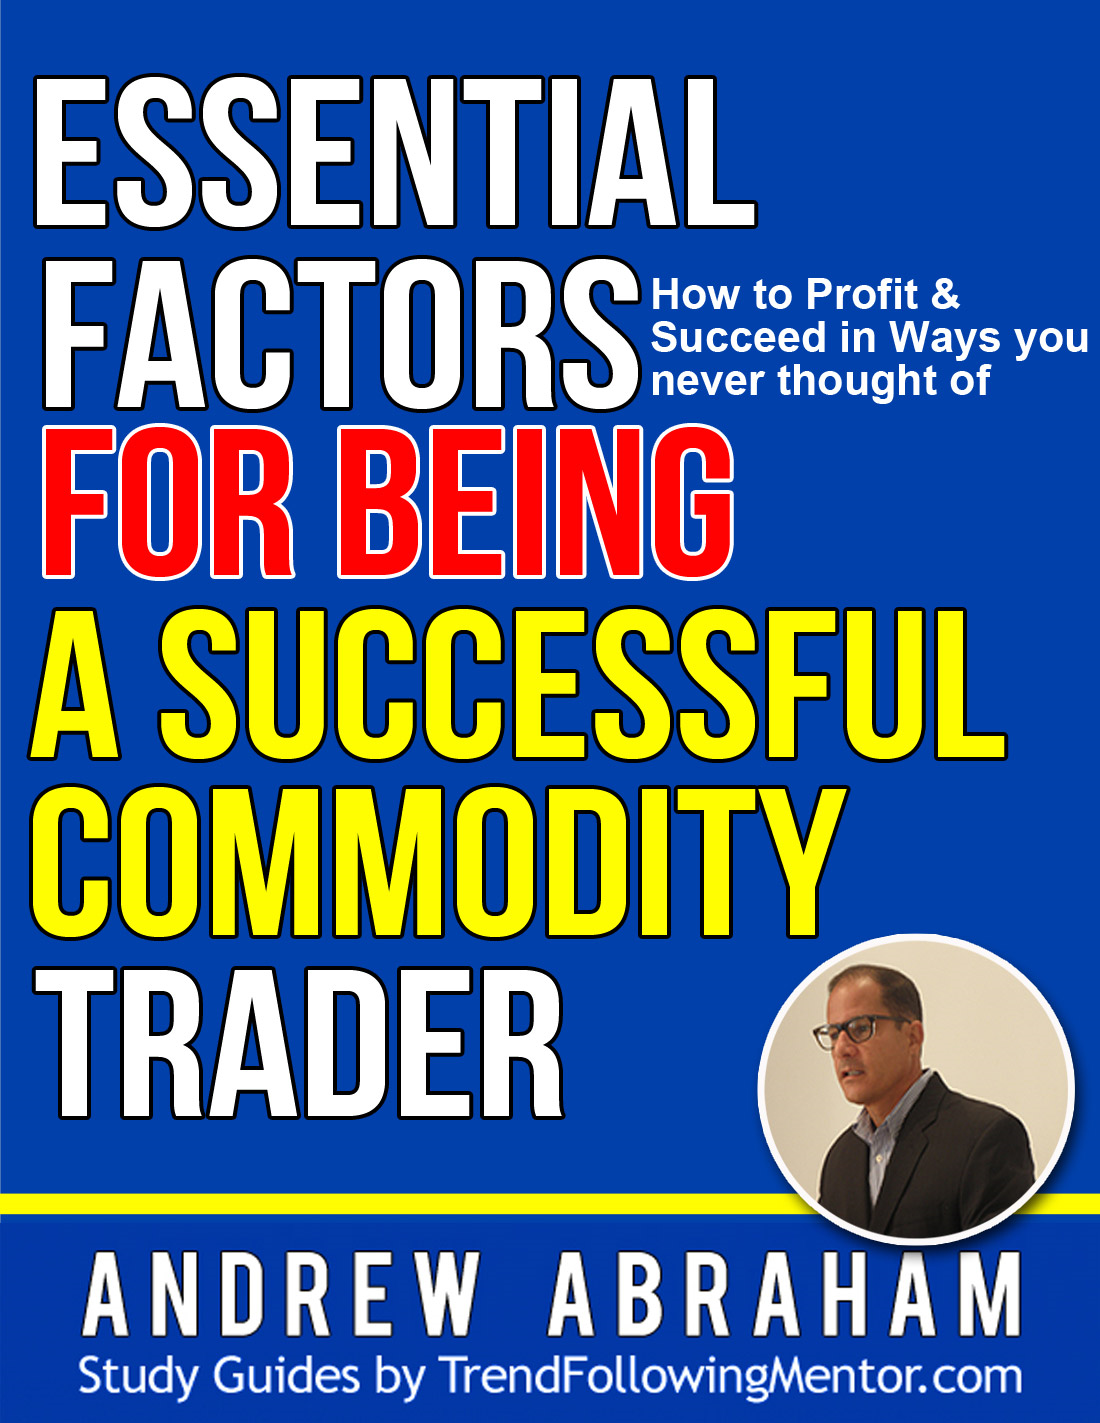 Commodity Trading  Mistakes-Learn to Be a Better Trader